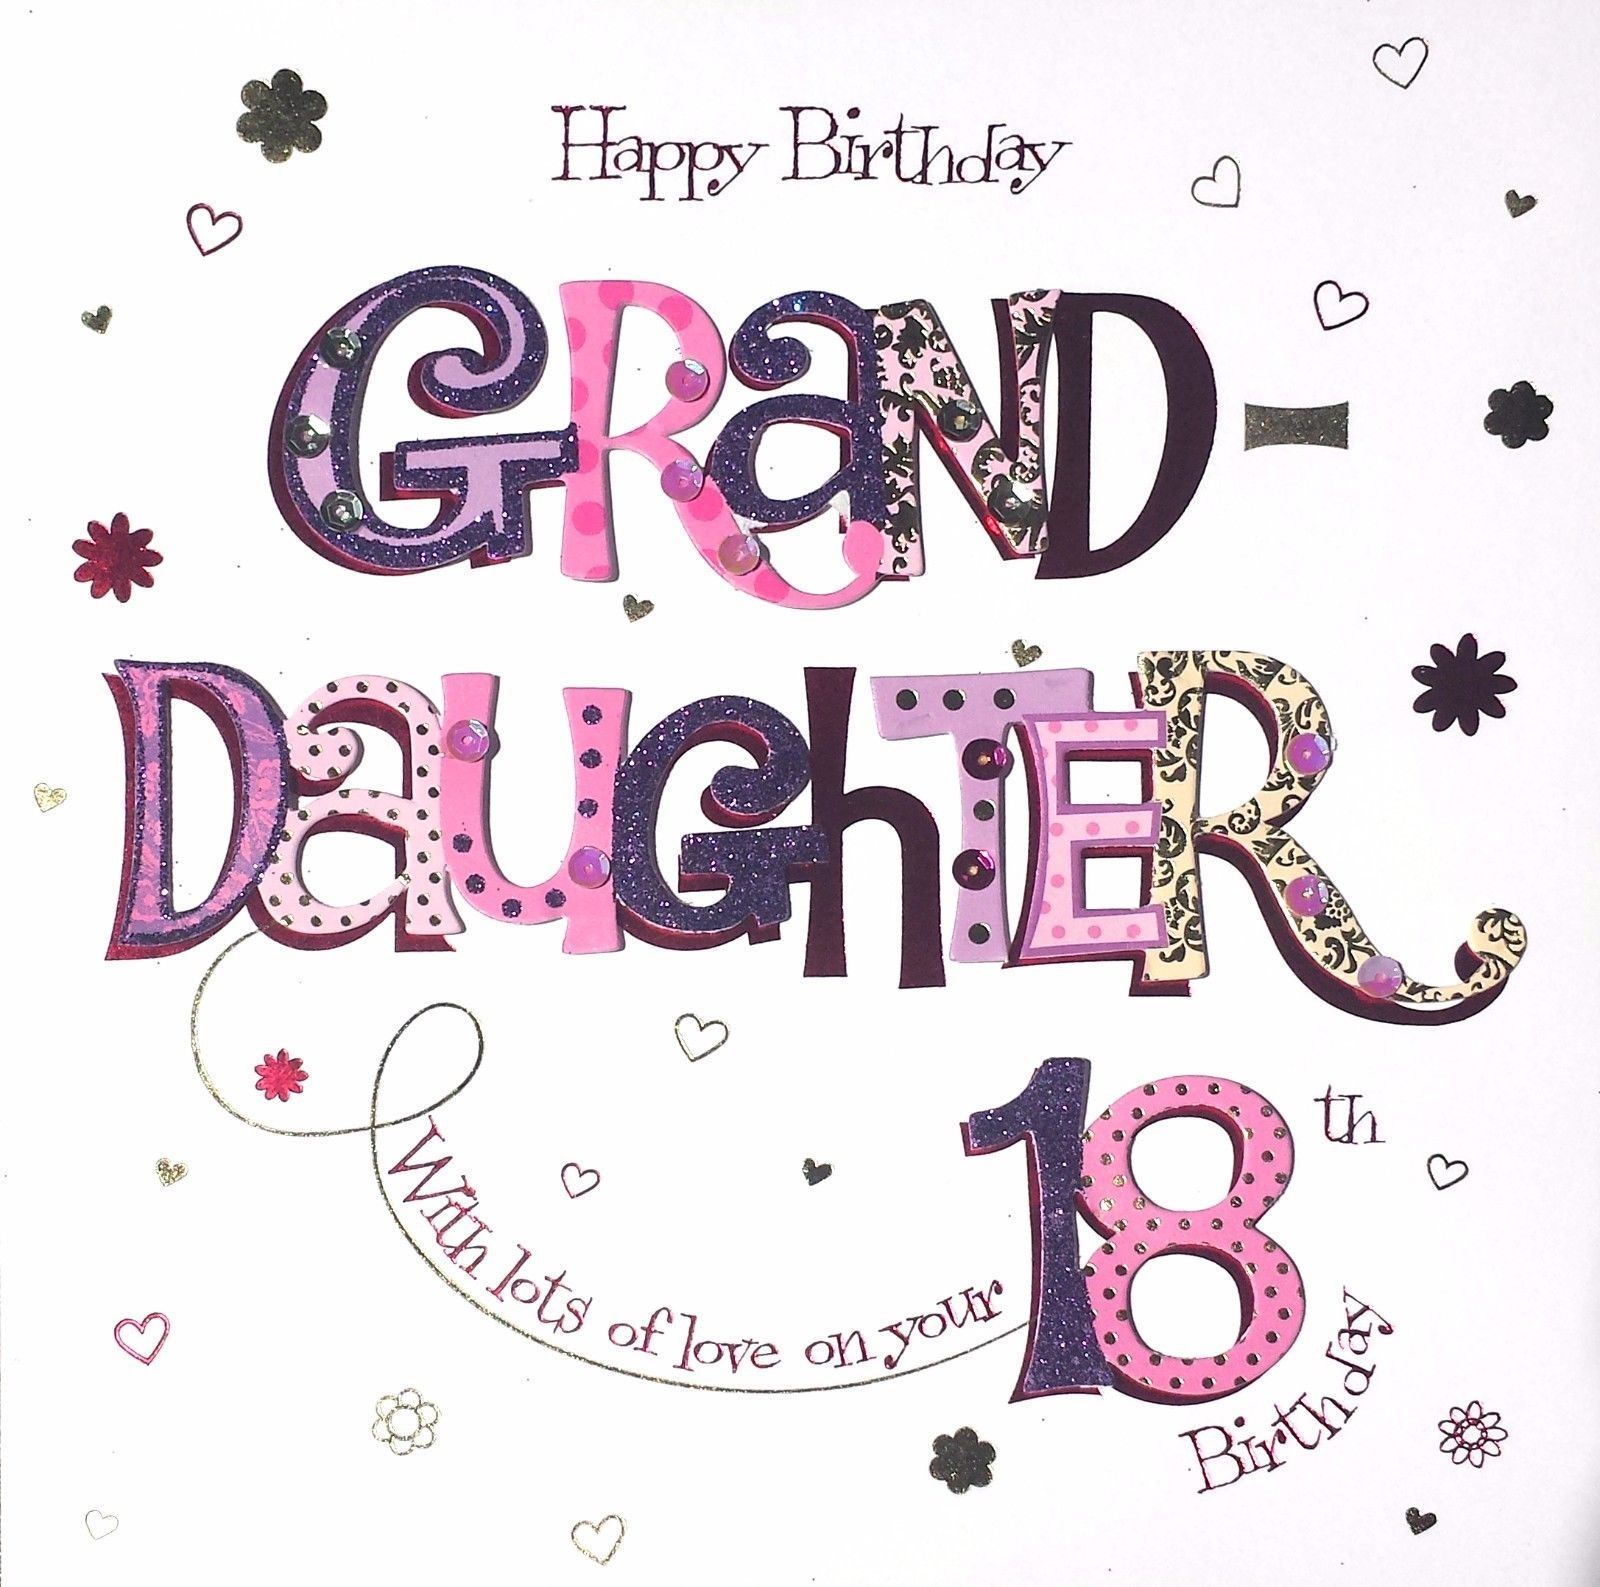 Happy Birthday Granddaughter On Your 18Th